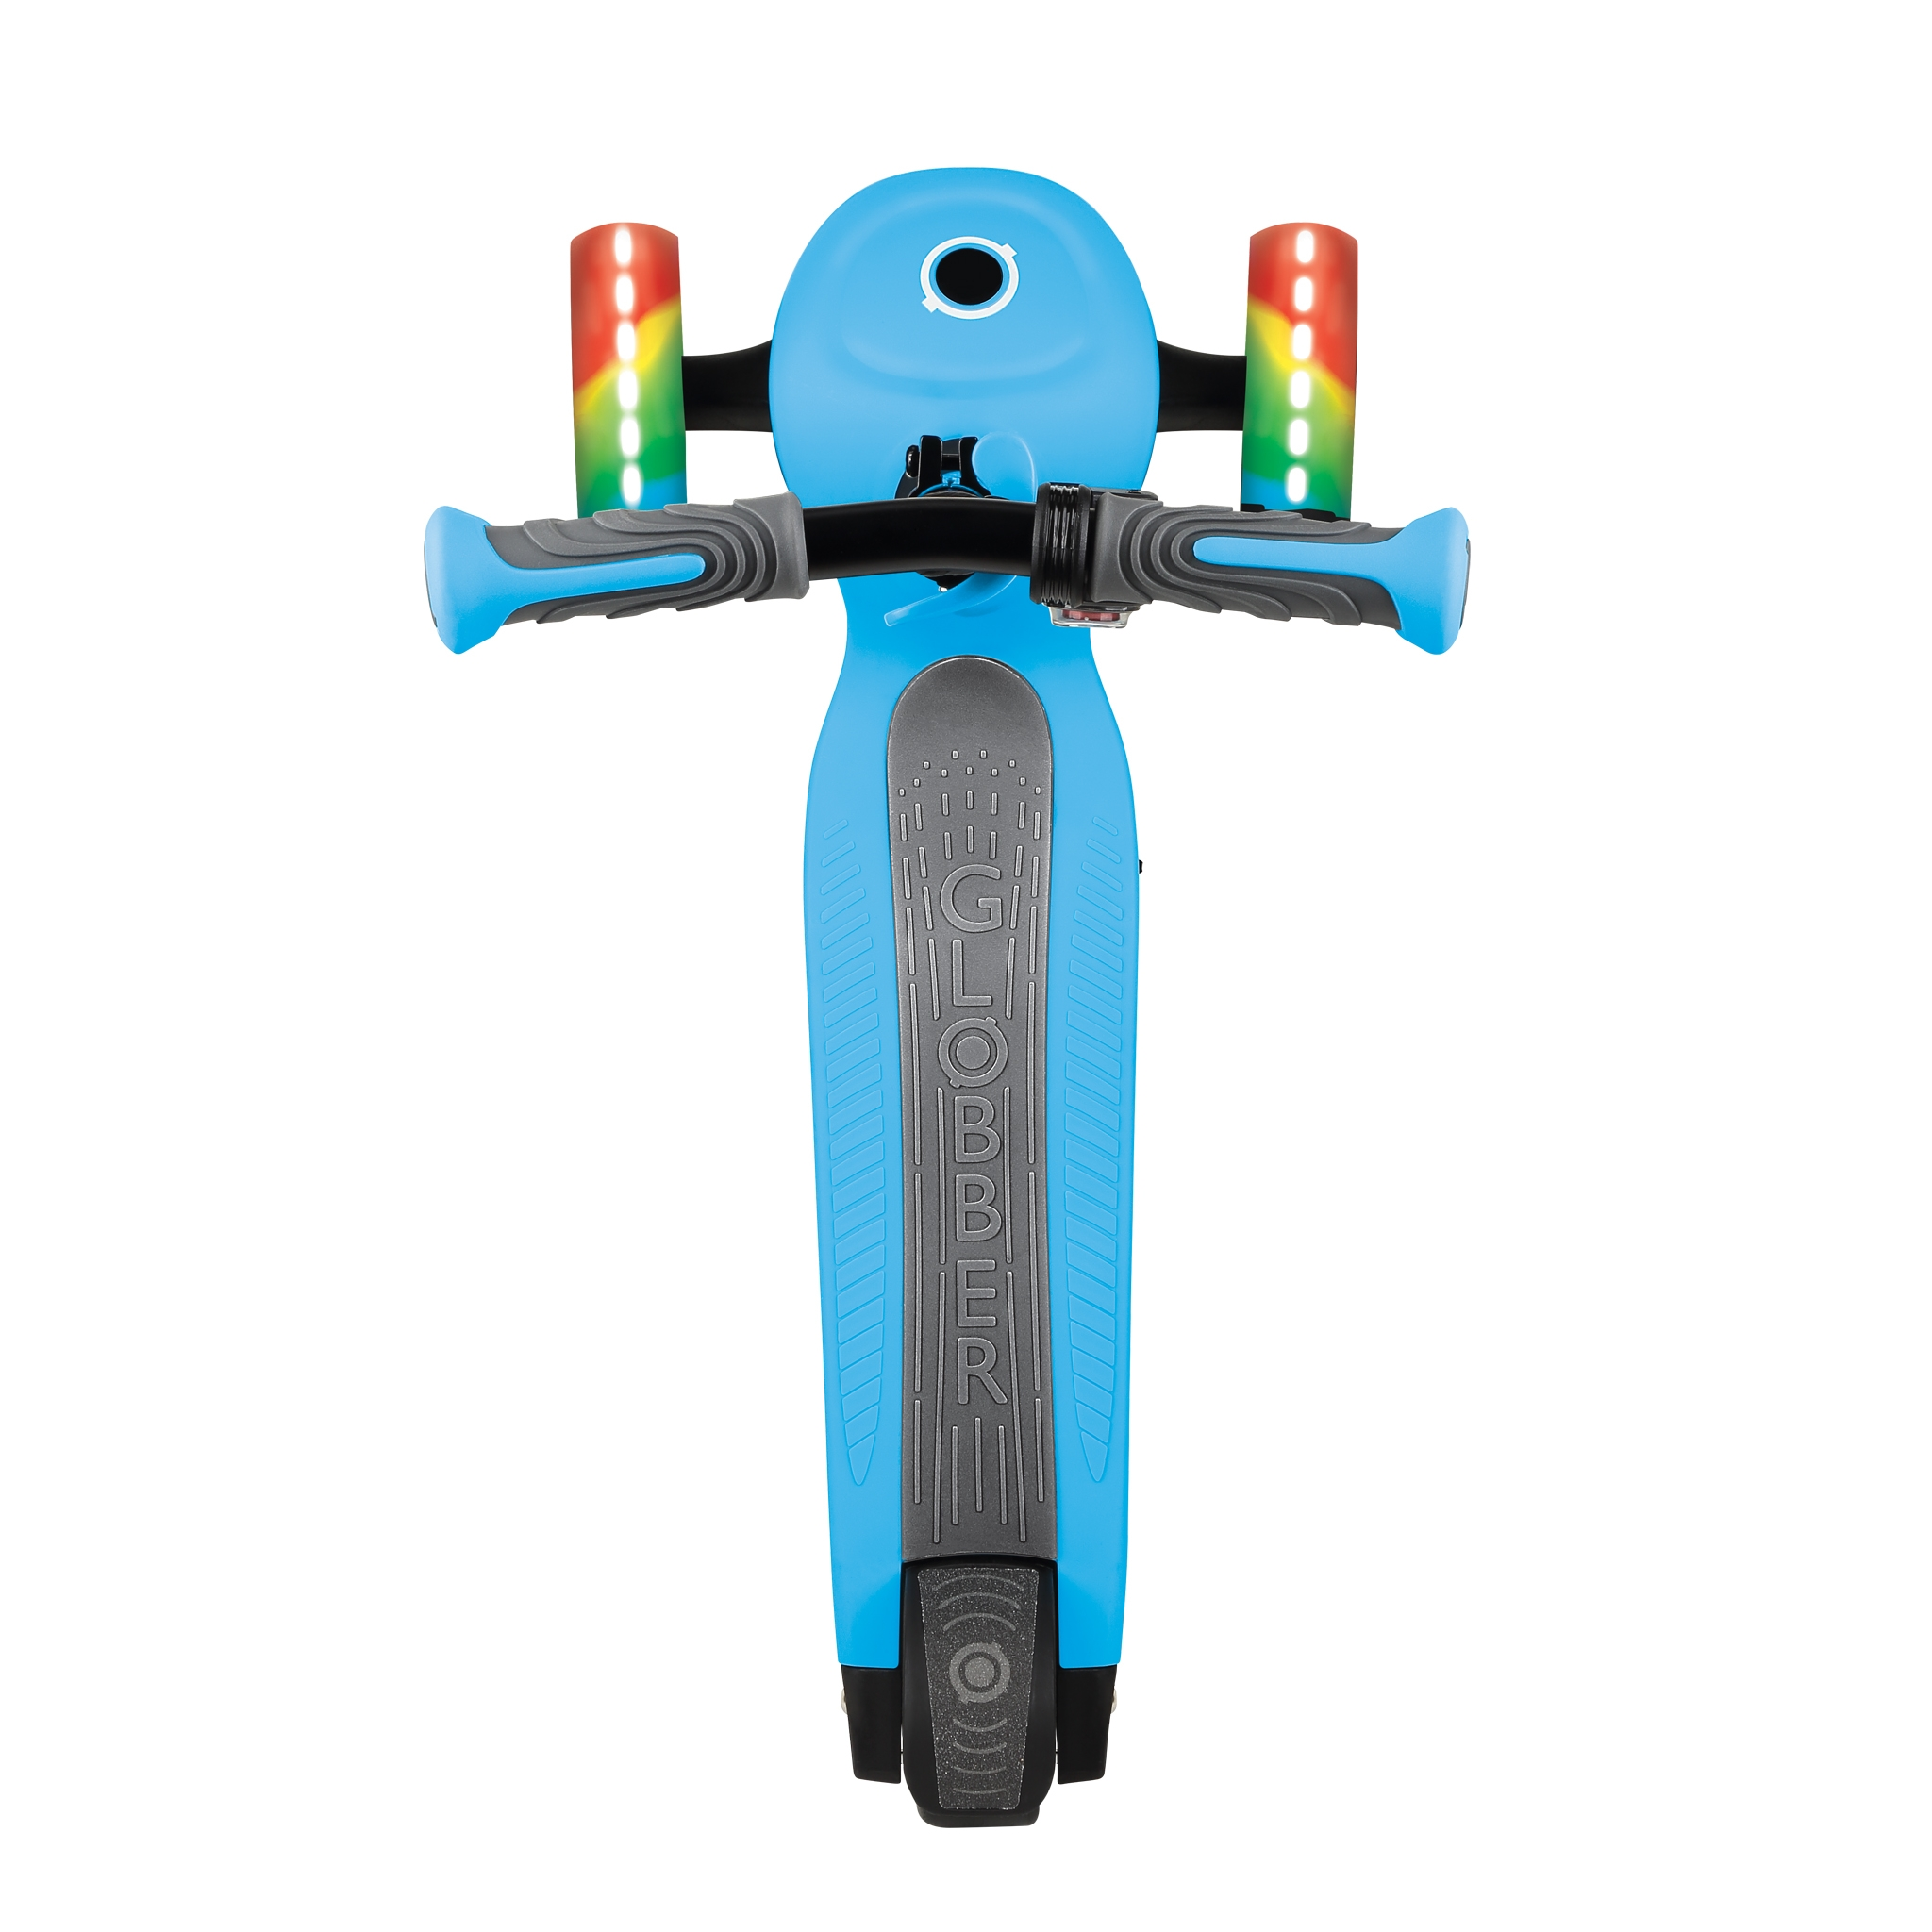 Globber-ONE-K-E-MOTION-4-award-winning-3-wheel-adjustable-electric-scooter-for-kids-with-wide-deck_sky-blue 2